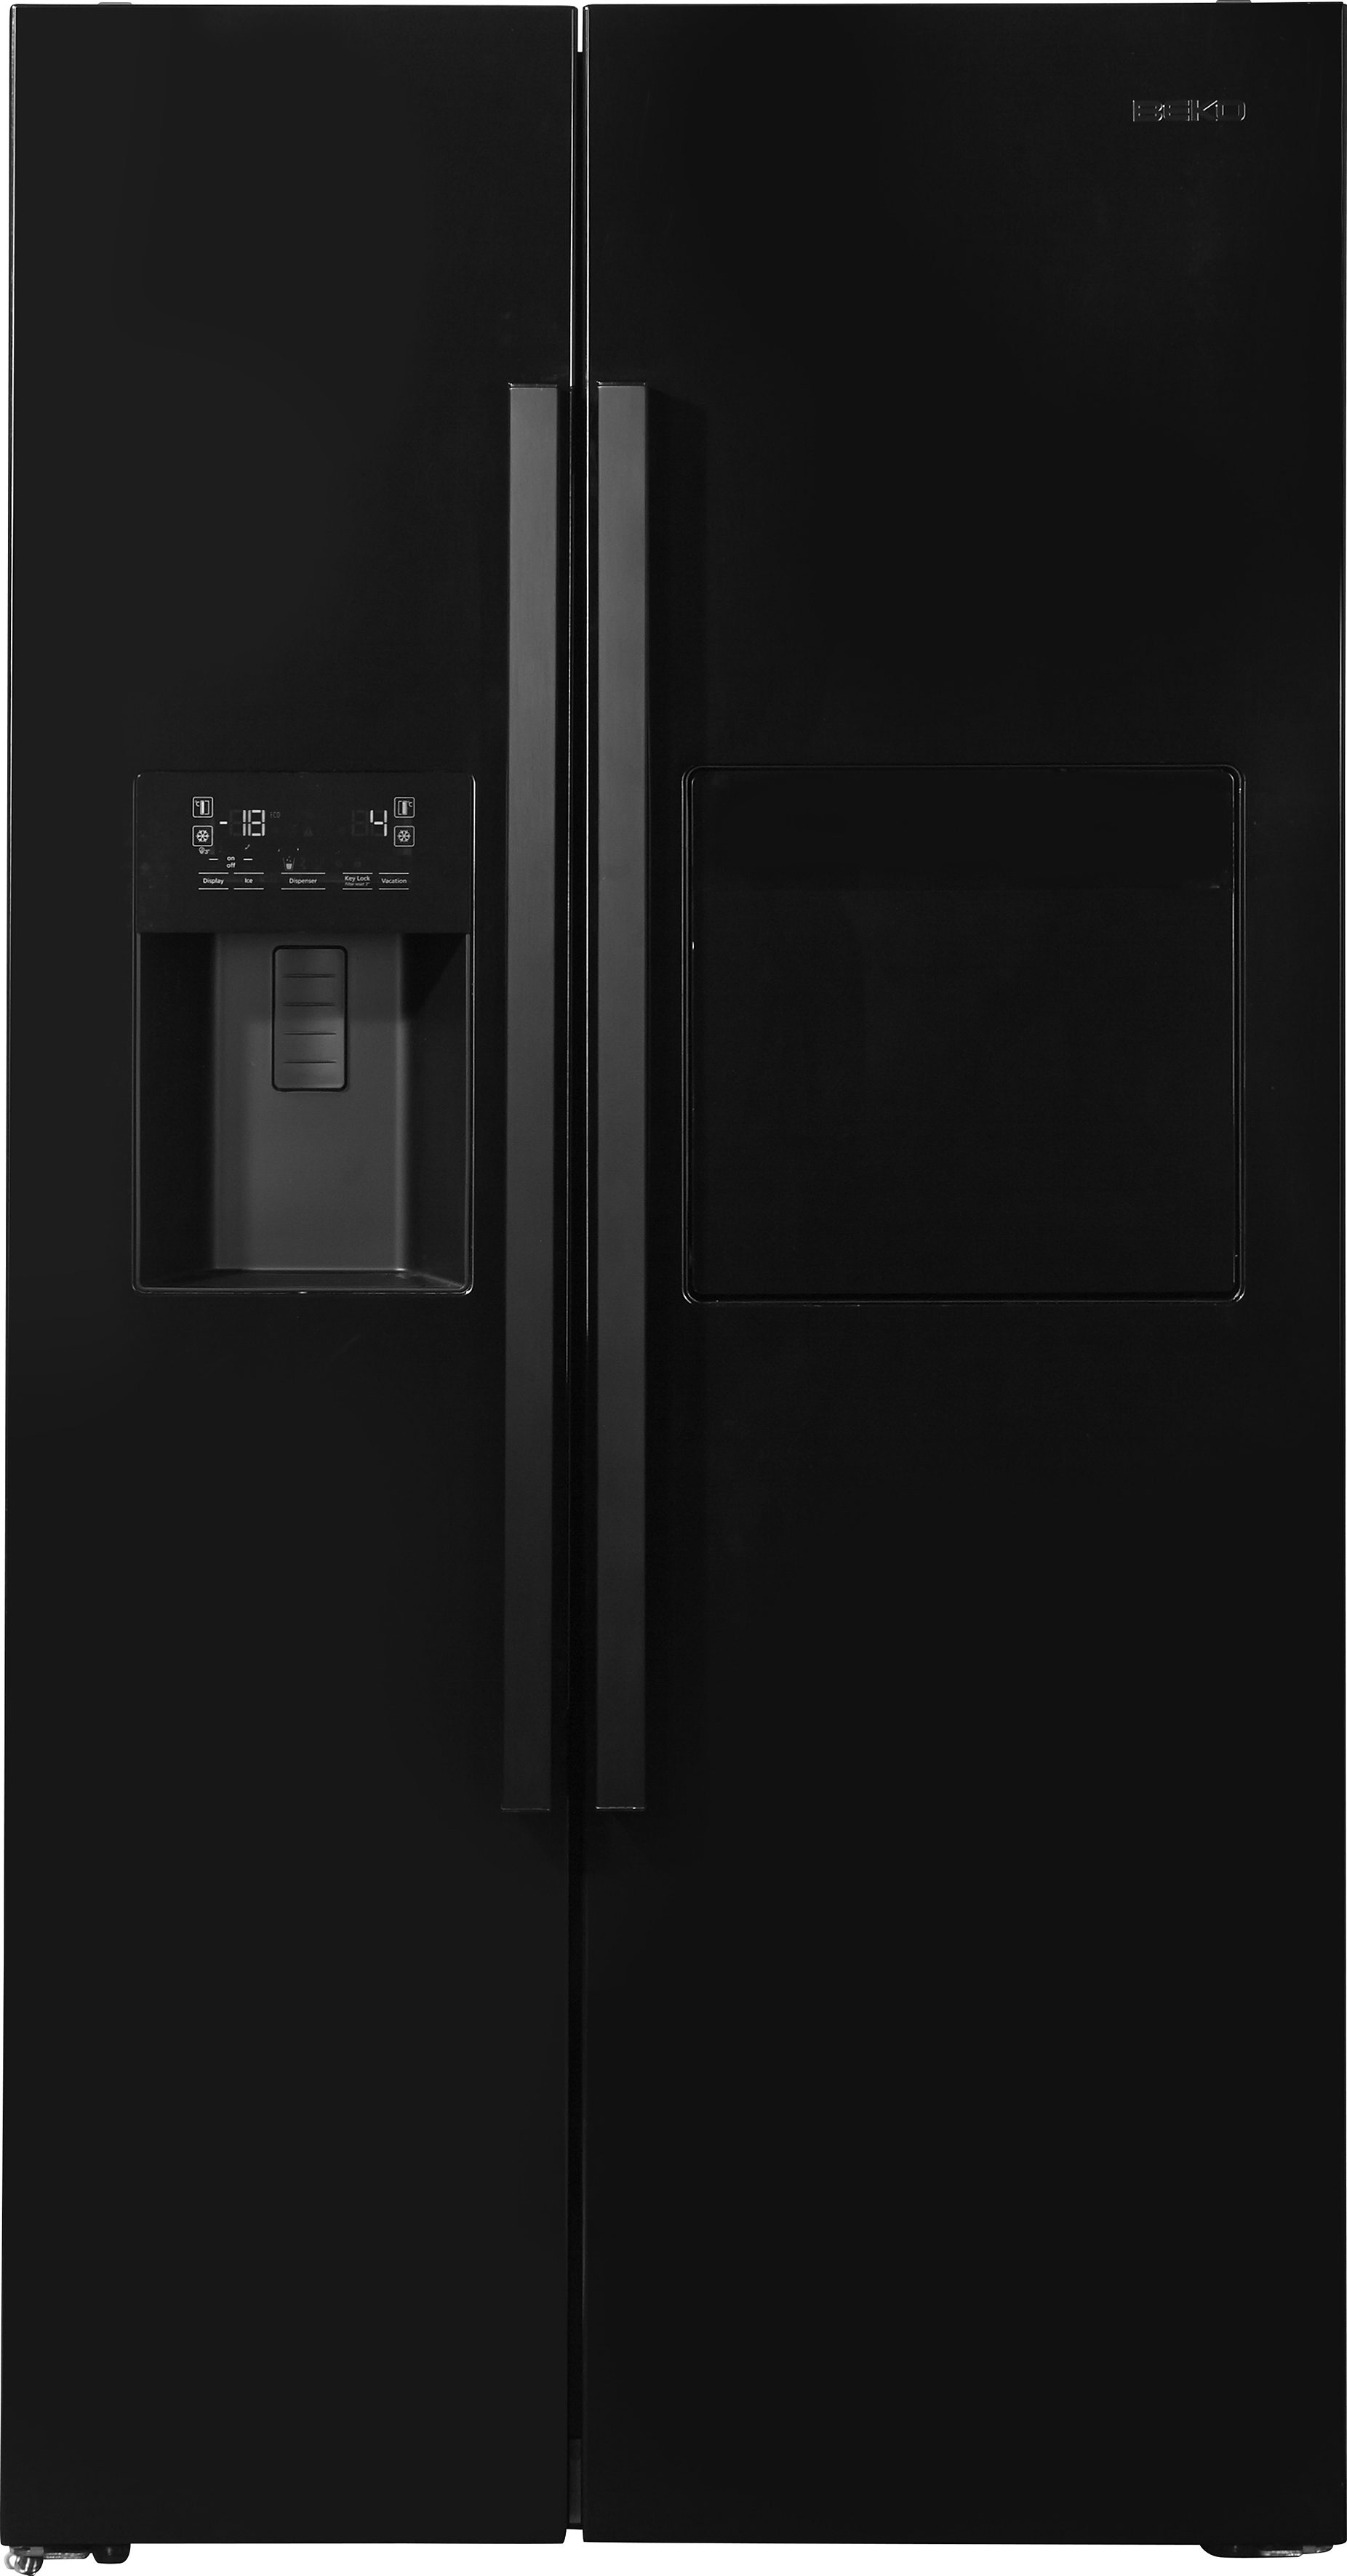 Beko Side by Side GN 162430 X/P, A++, 179 cm hoch, NoFrost